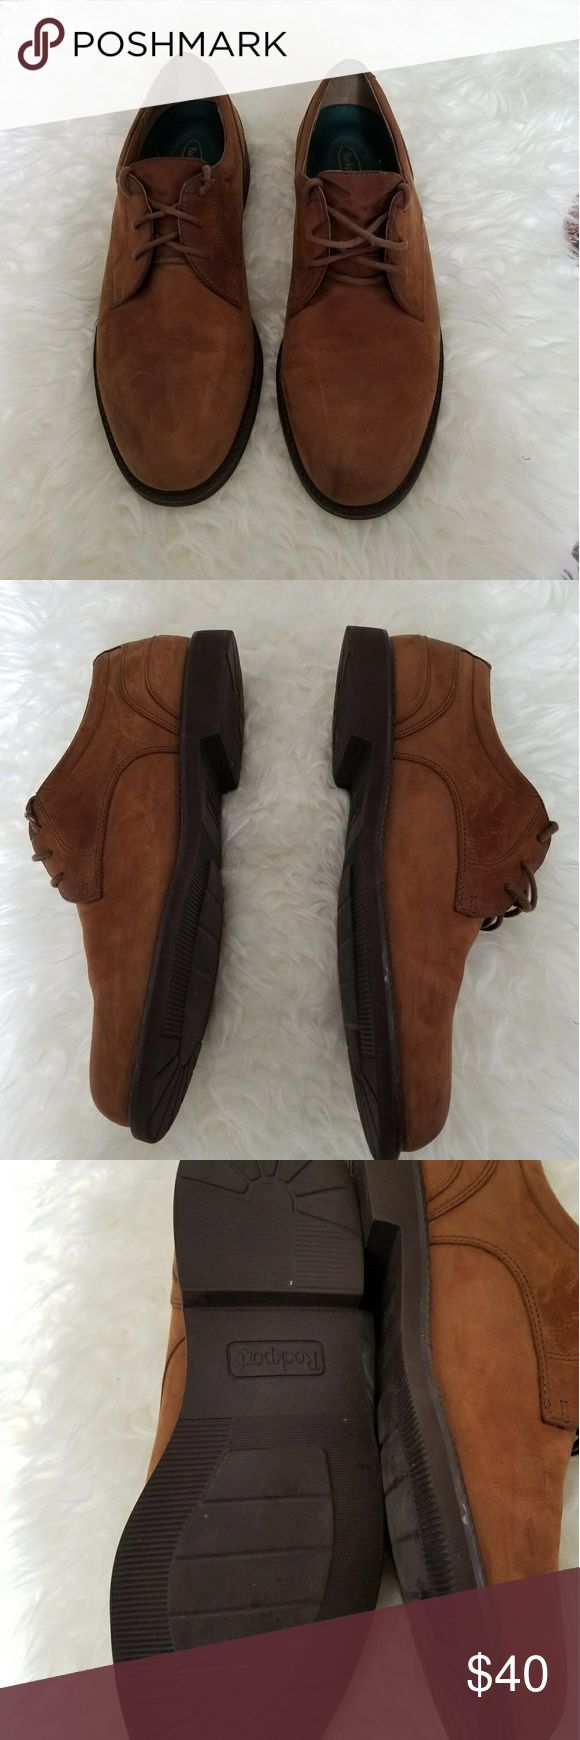 🍁🍁Mens ROCKPORT shoes size 12🍁🍁 Great condition, looks like they have only been worn a few times. Rockport Shoes Loafers & Slip-Ons